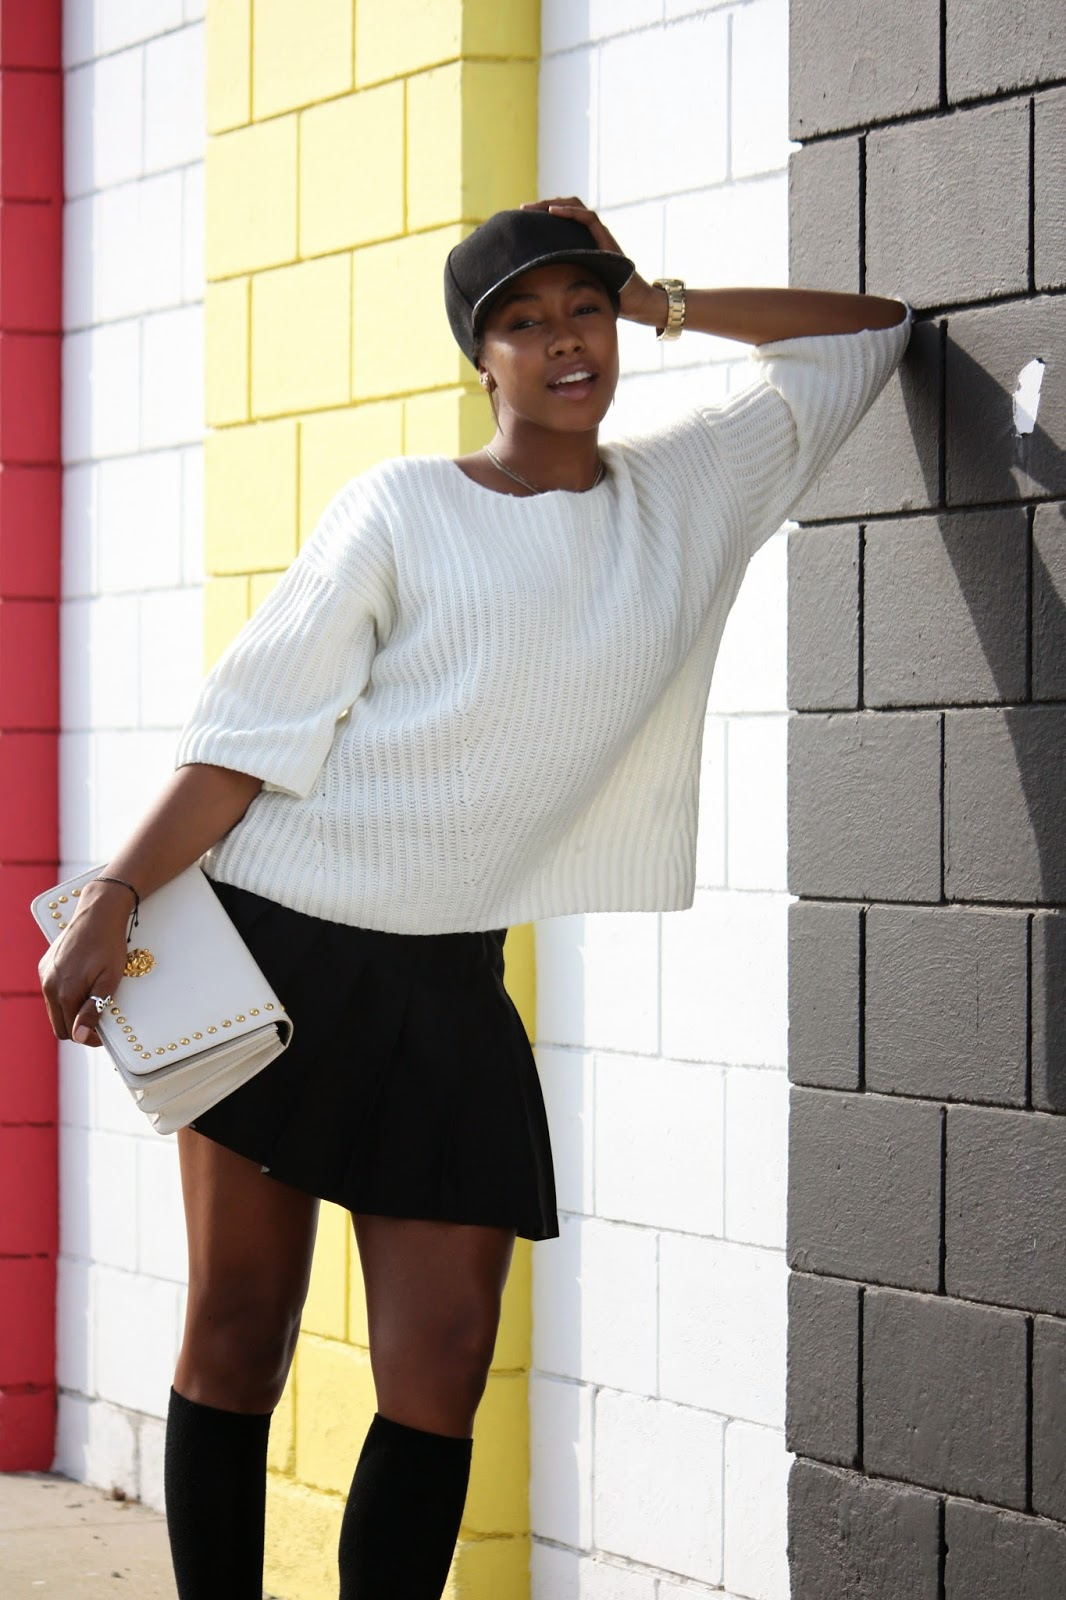 Outfit details: generic baseball cap H&M knit top American Apparel tennis skirt Vintage bag